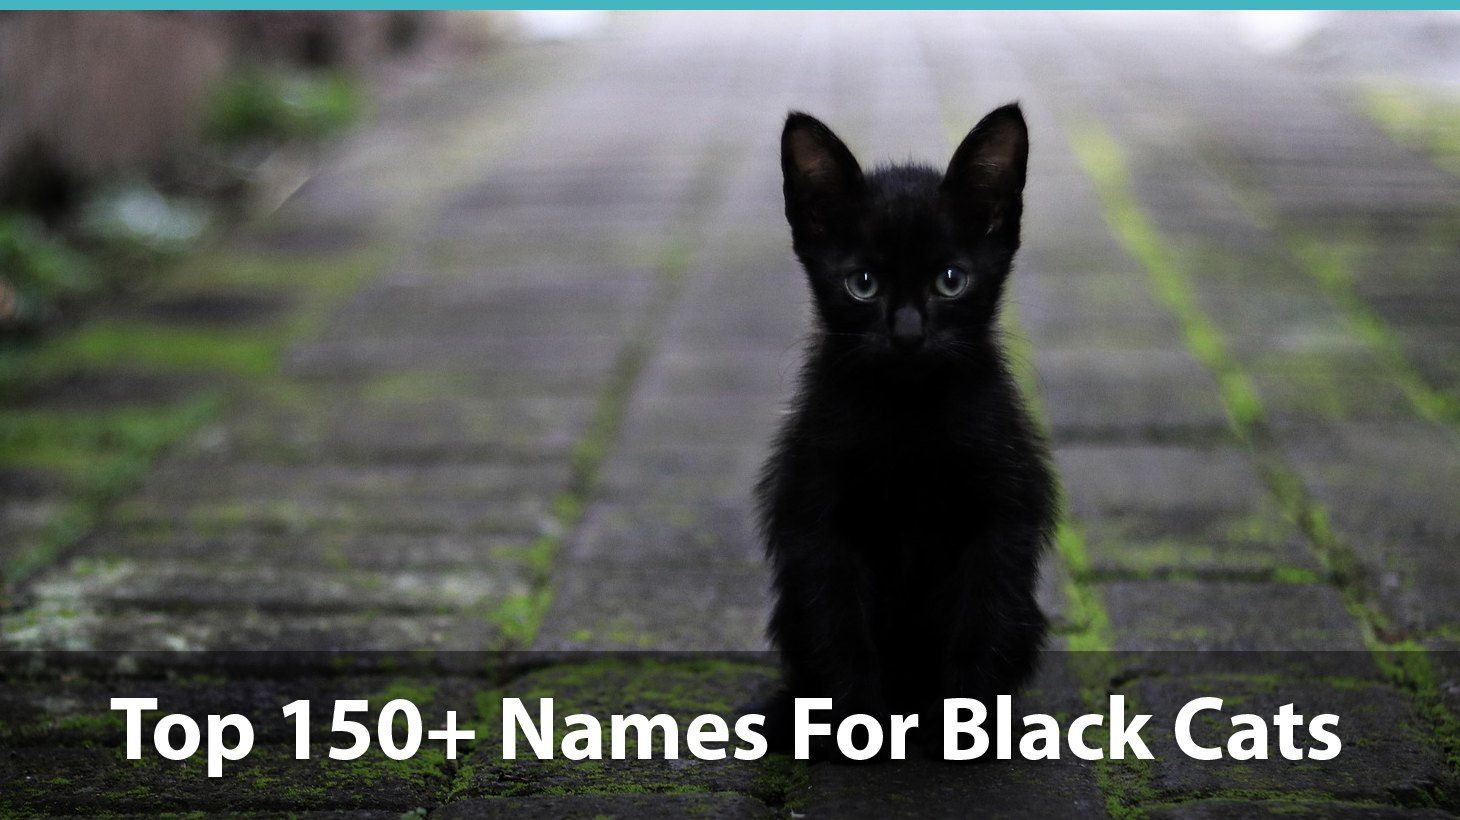 Looking for a name for your black kitty? This extensive